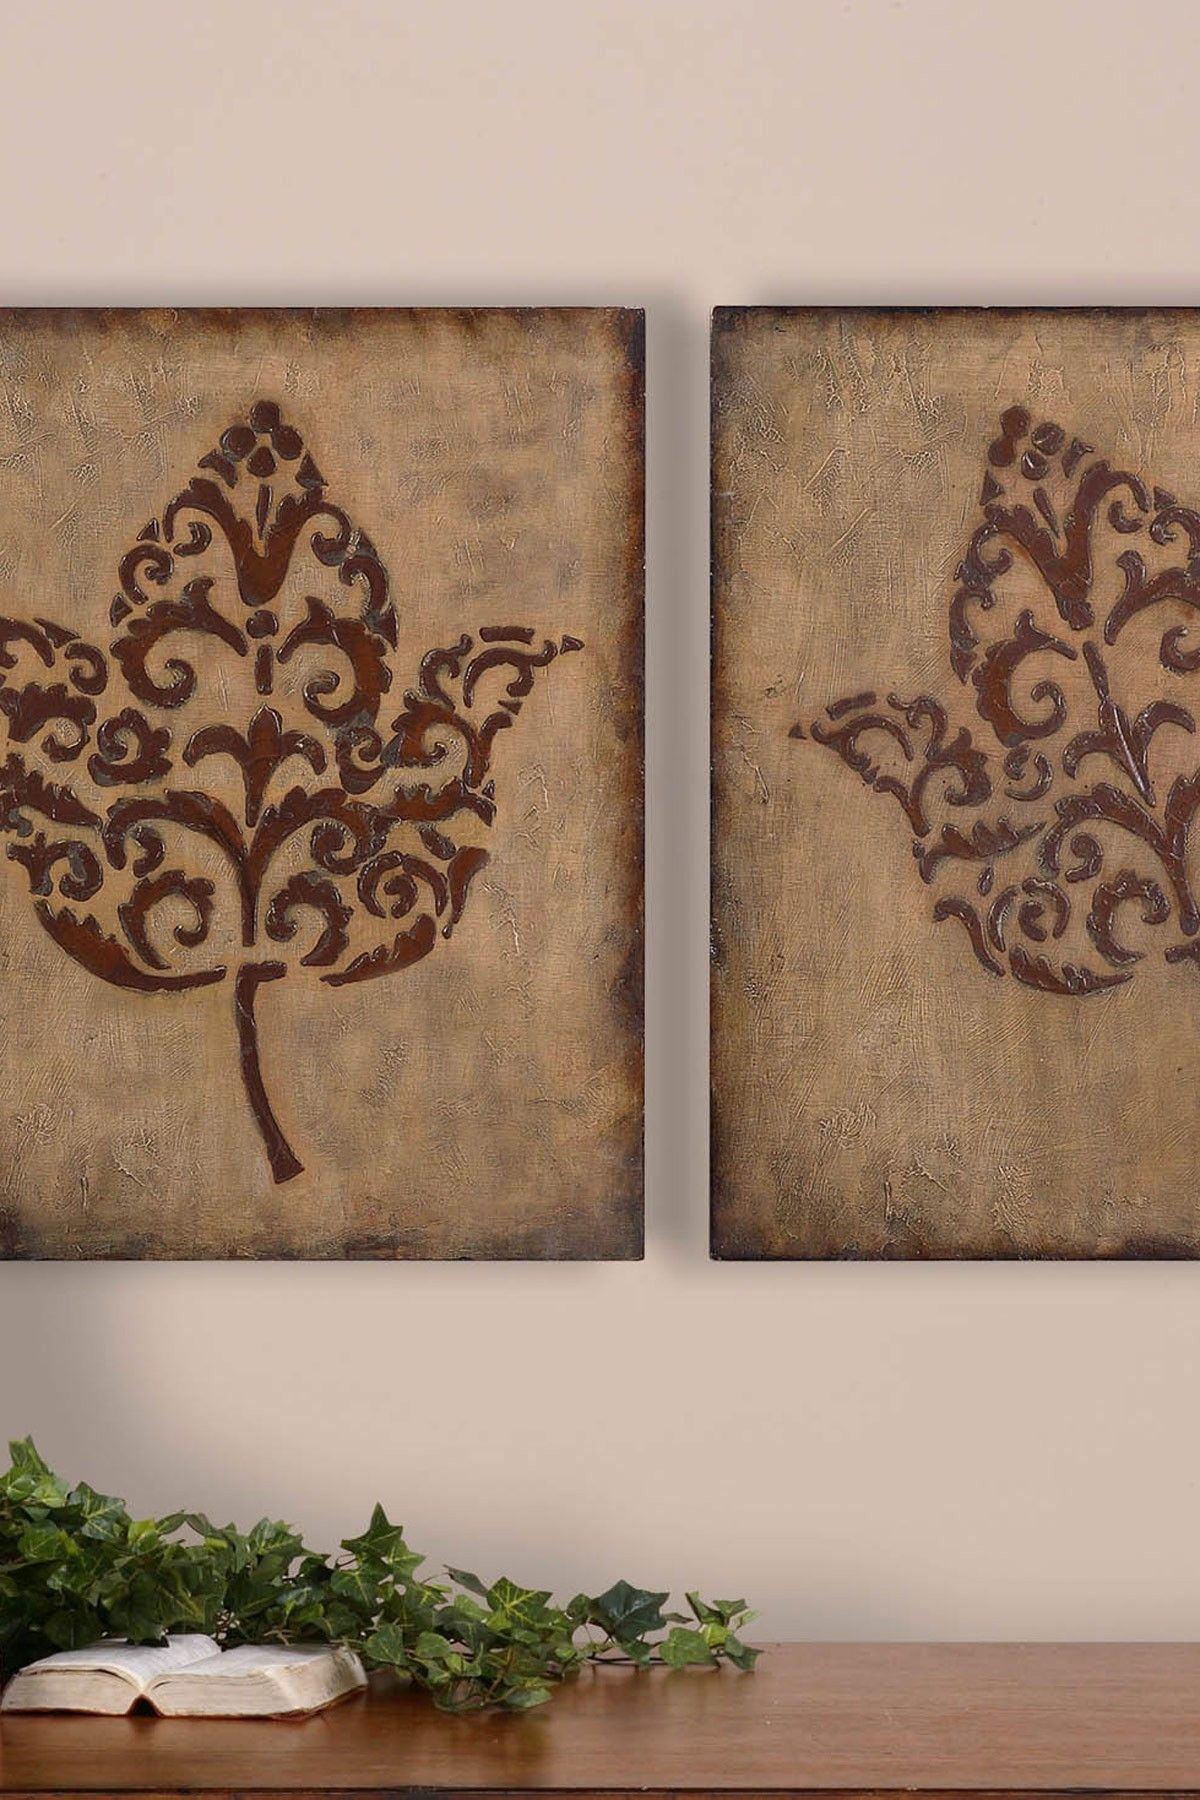 Decorative Leaf Wall Panels | Craft & Diy | Decorative Inside 2 Piece Panel Wood Wall Decor Sets (Set Of 2) (Gallery 22 of 30)